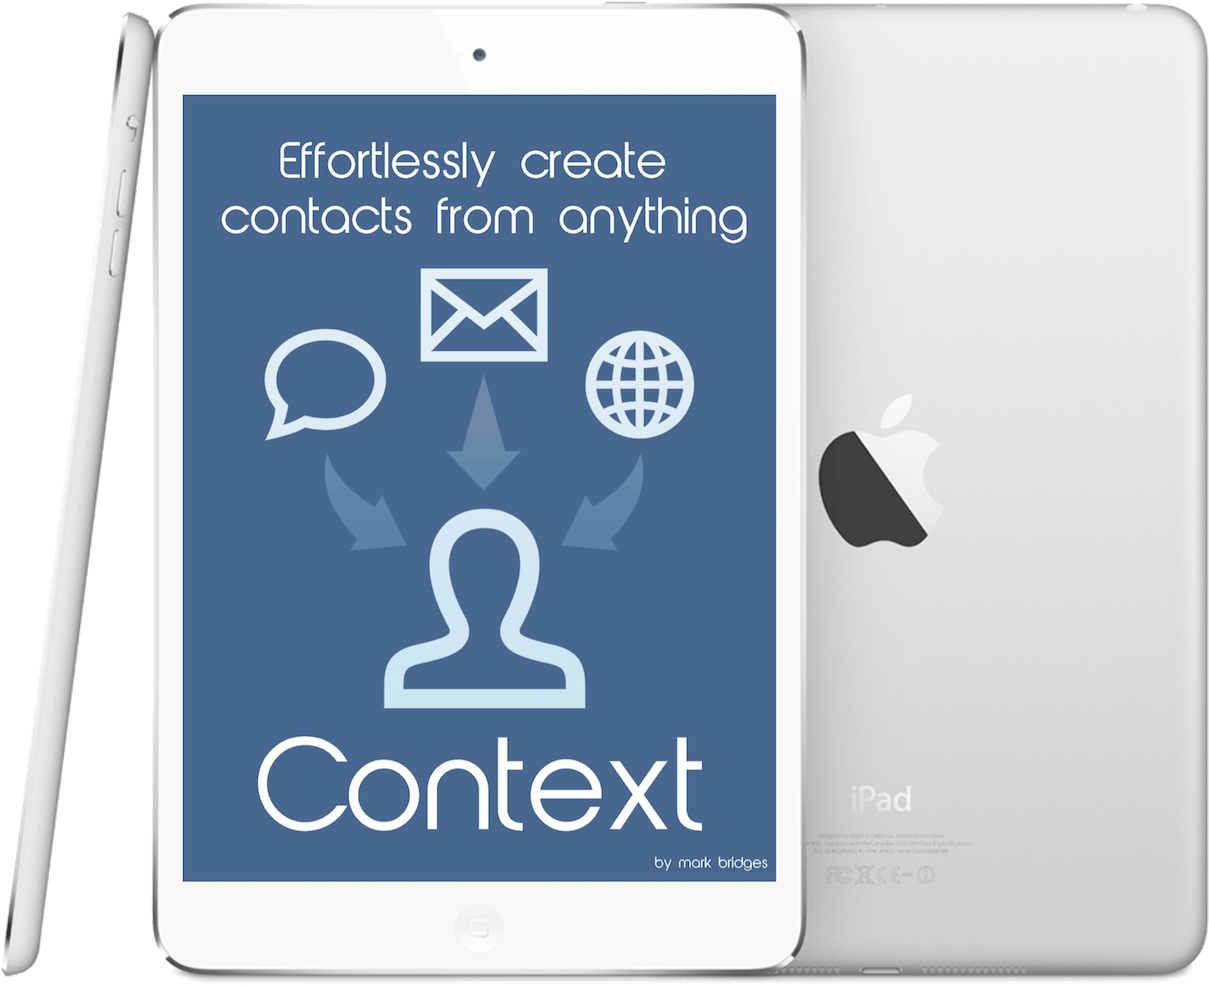 Context iOS app splash screen displayed on an iPad